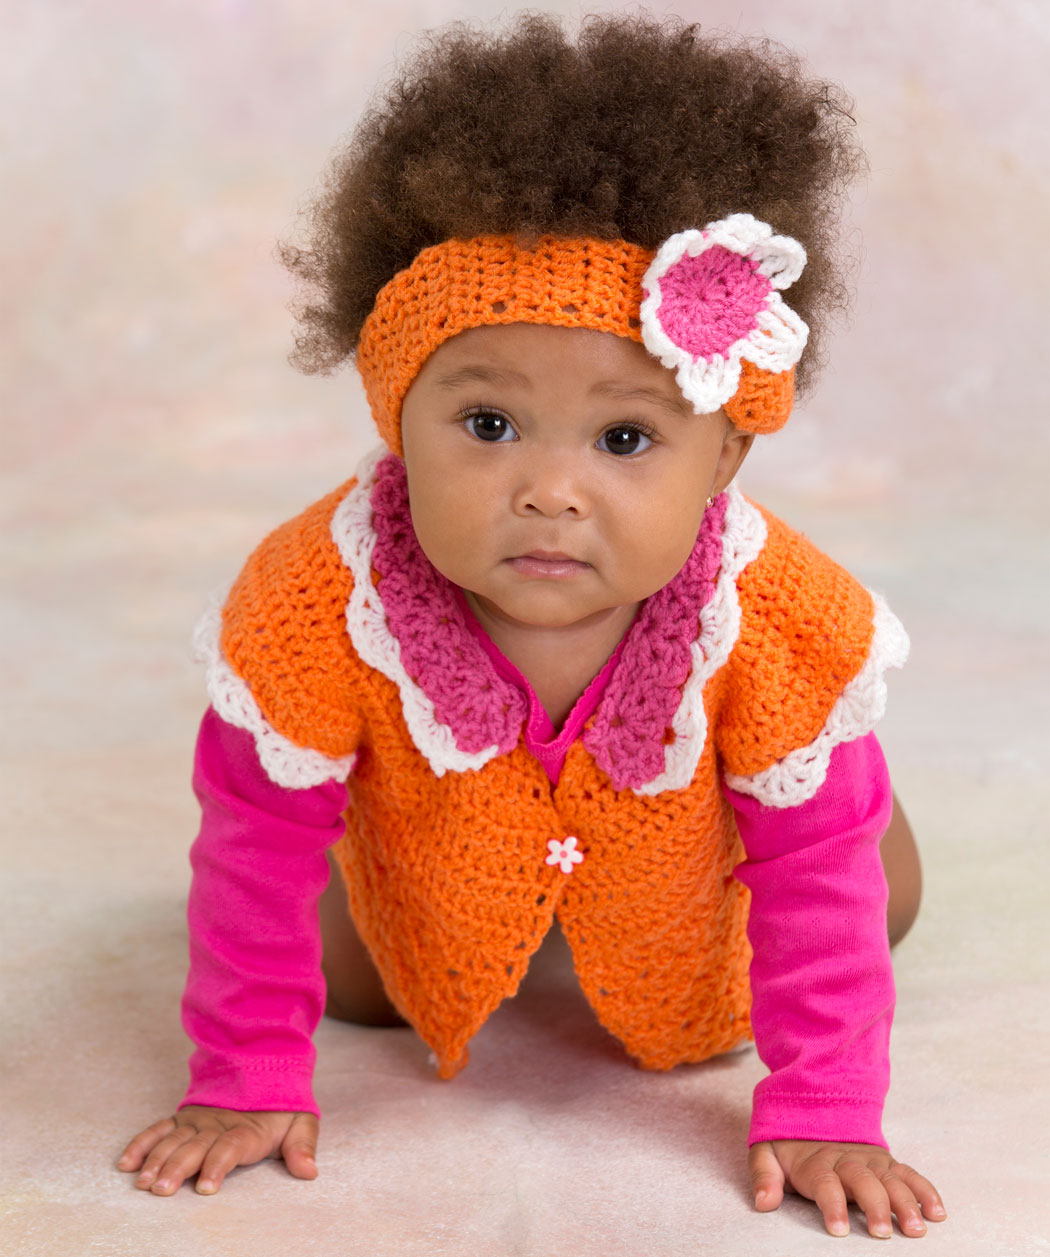 Incredible Flower Petal Baby Sweater Crochet Pattern - The Crochet ...